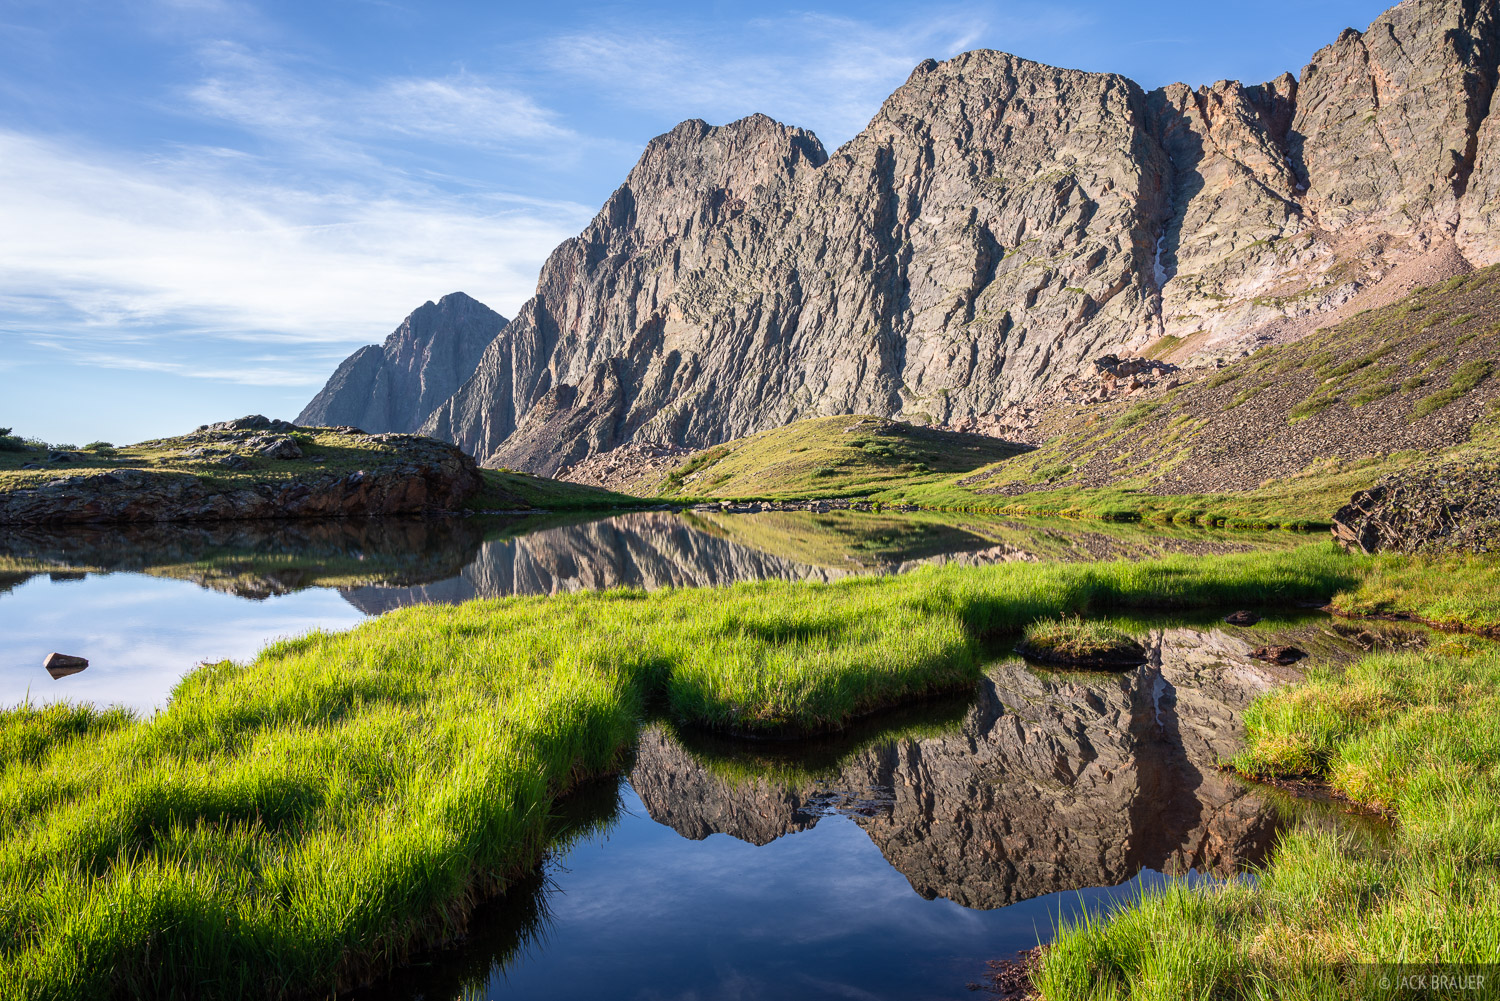 Colorado, Mount Silex, San Juan Mountains, Storm King, Weminuche Wilderness, reflection, Grenadier Range, photo